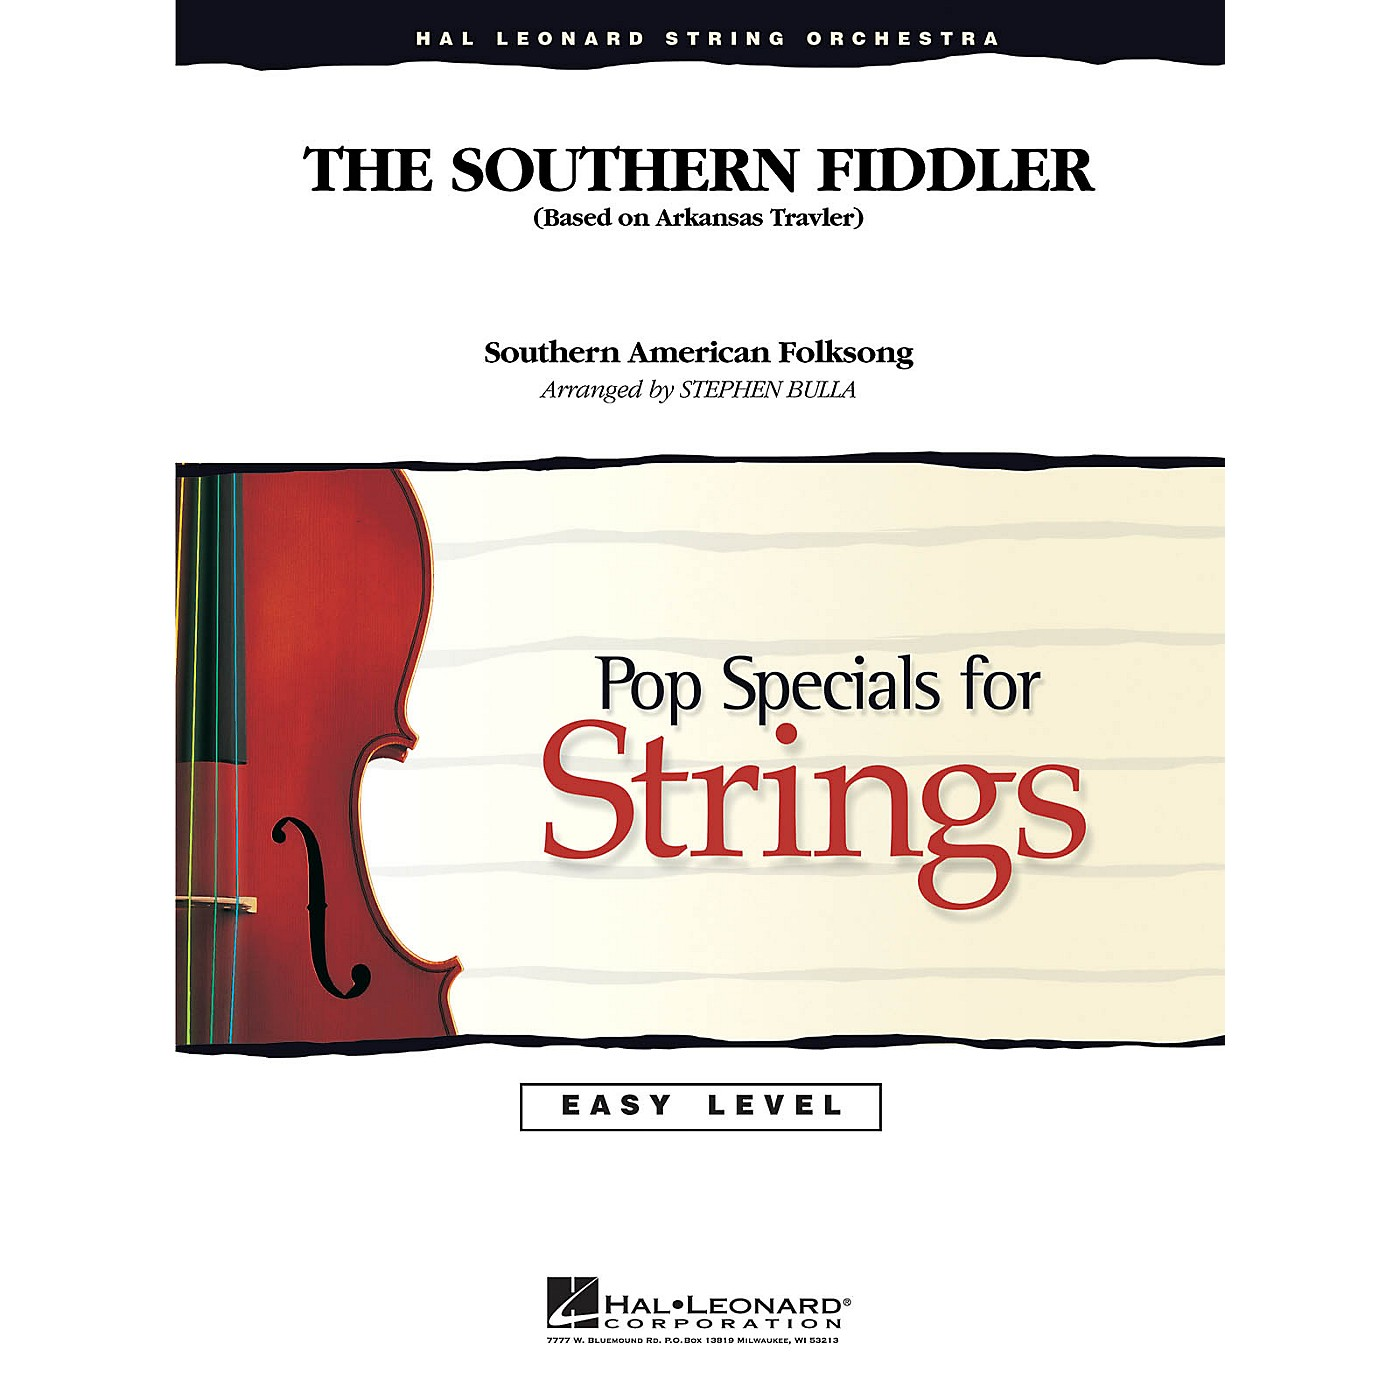 Hal Leonard The Southern Fiddler Easy Pop Specials For Strings Series Arranged by Stephen Bulla thumbnail